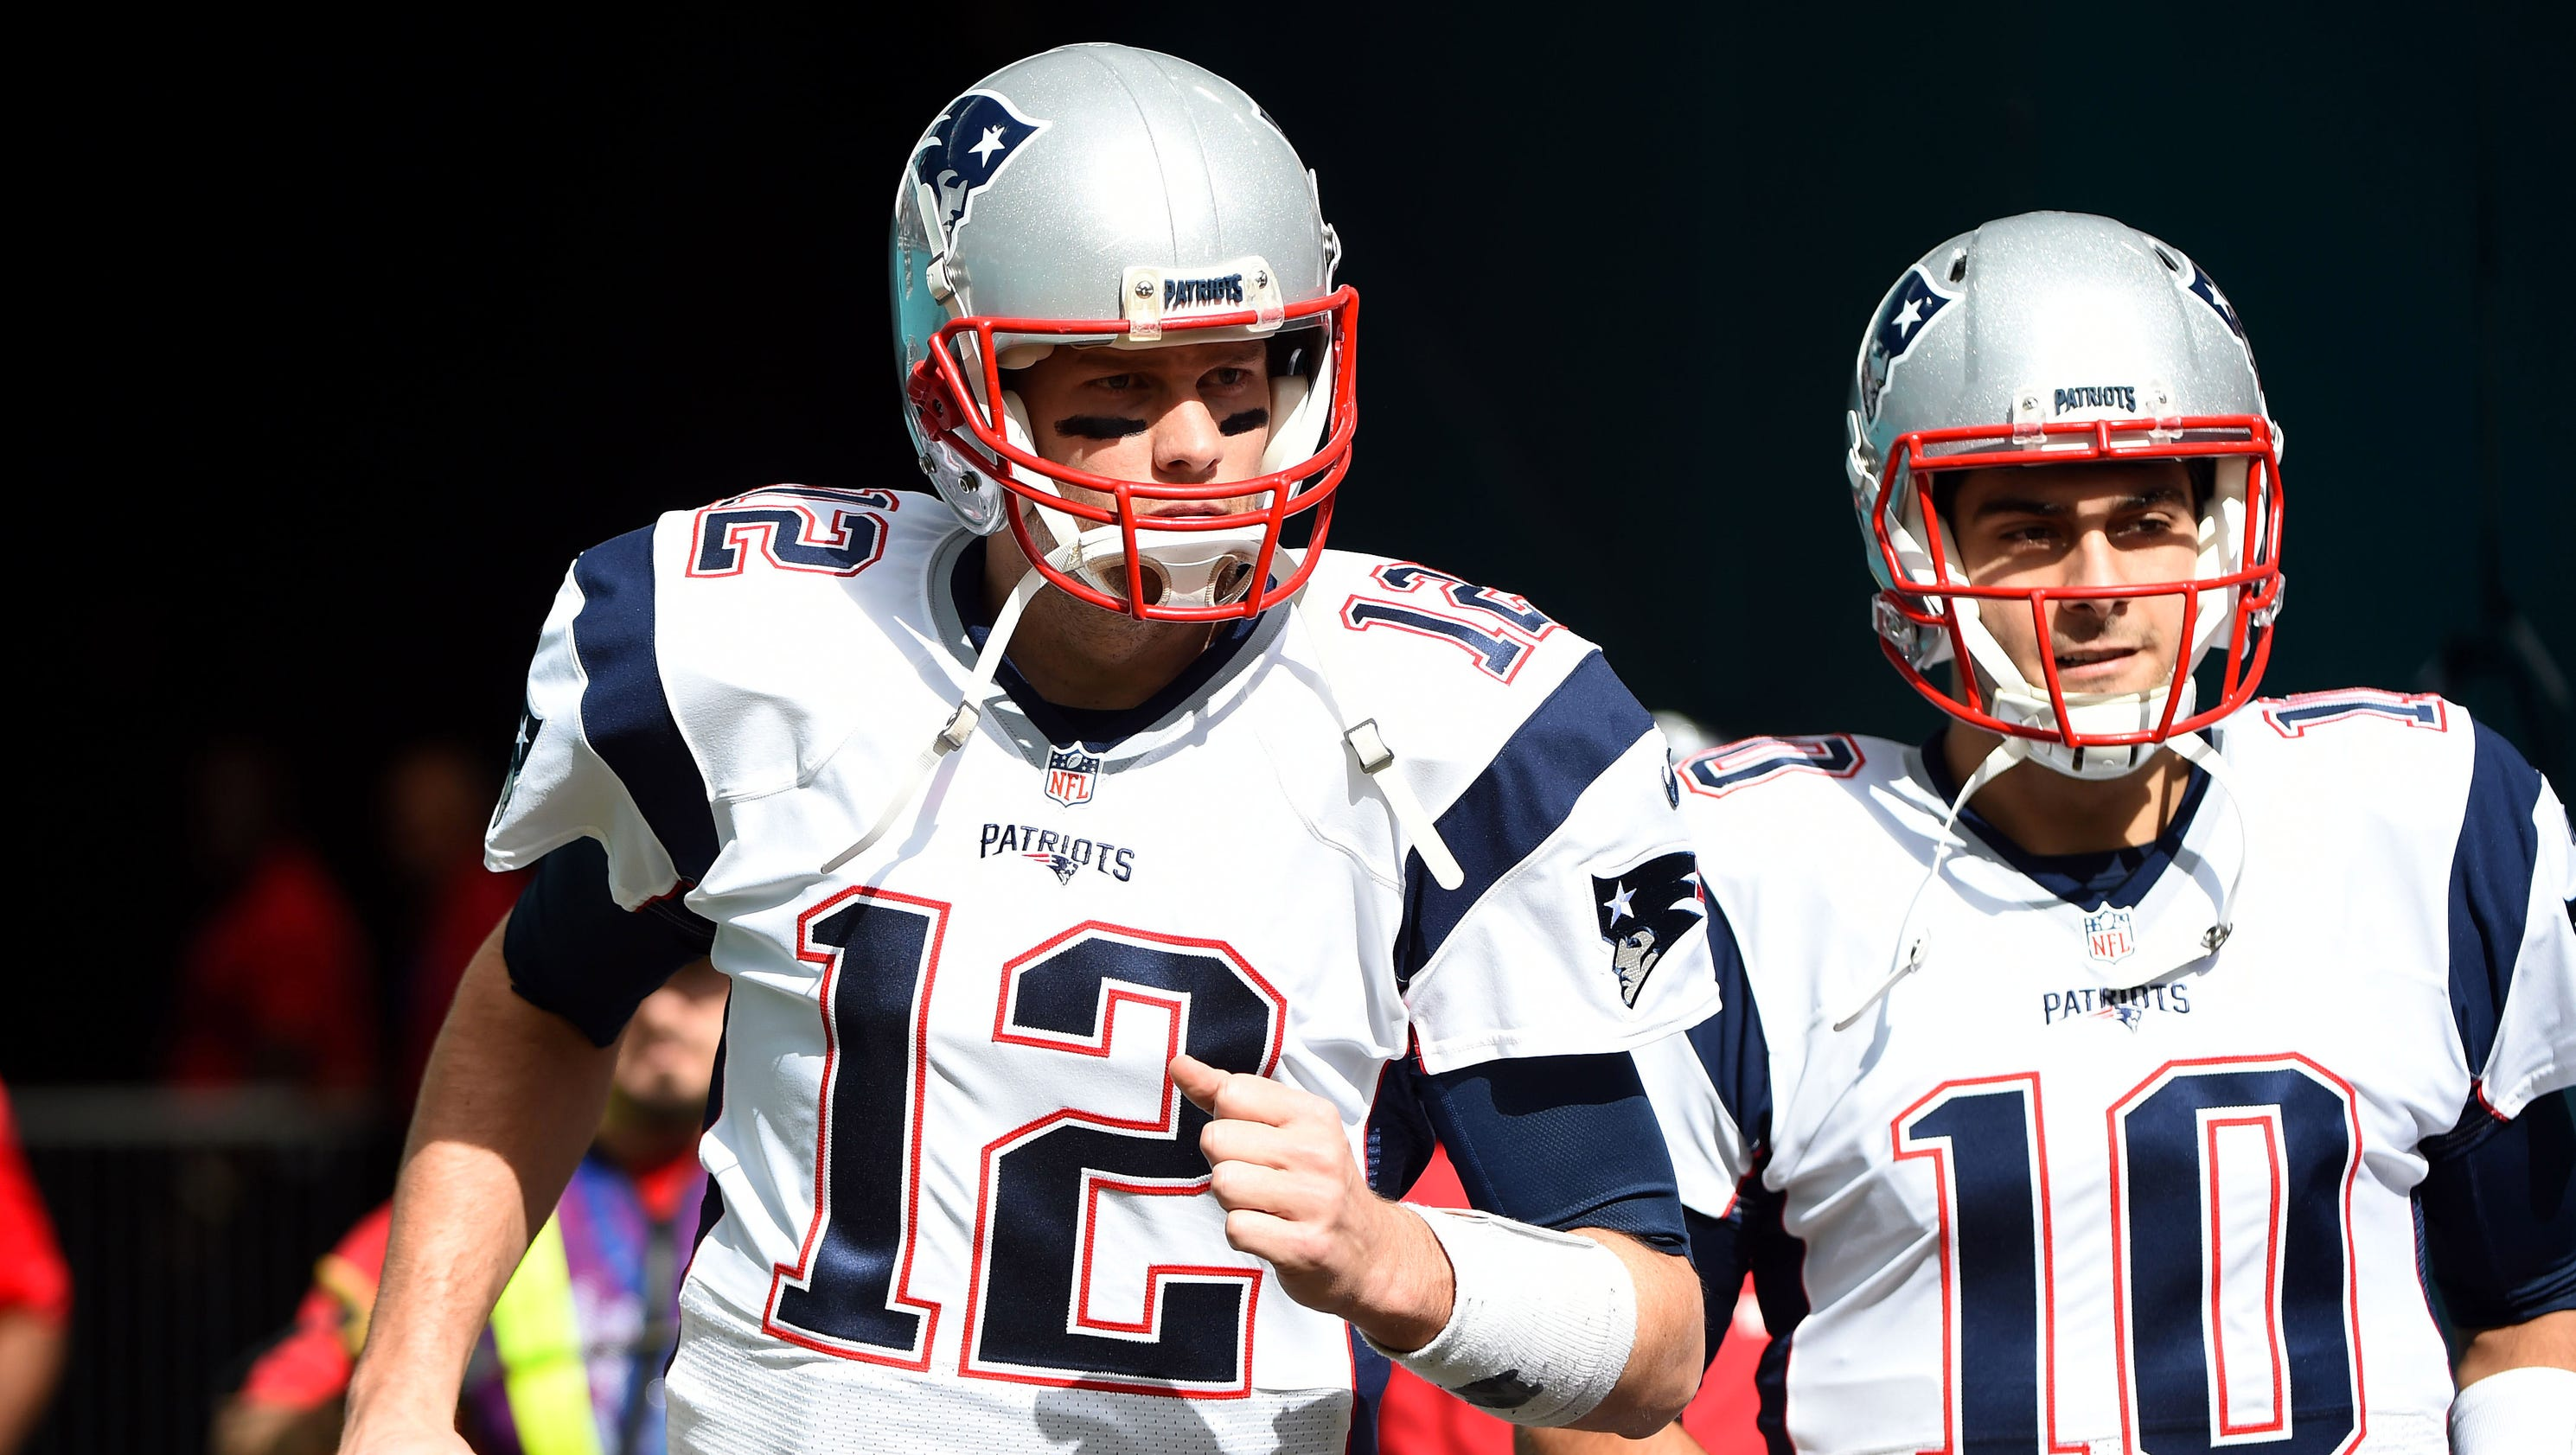 Whats next for Patriots after Super Bowl? Questions on Tom Brady, Jimmy Garoppolo